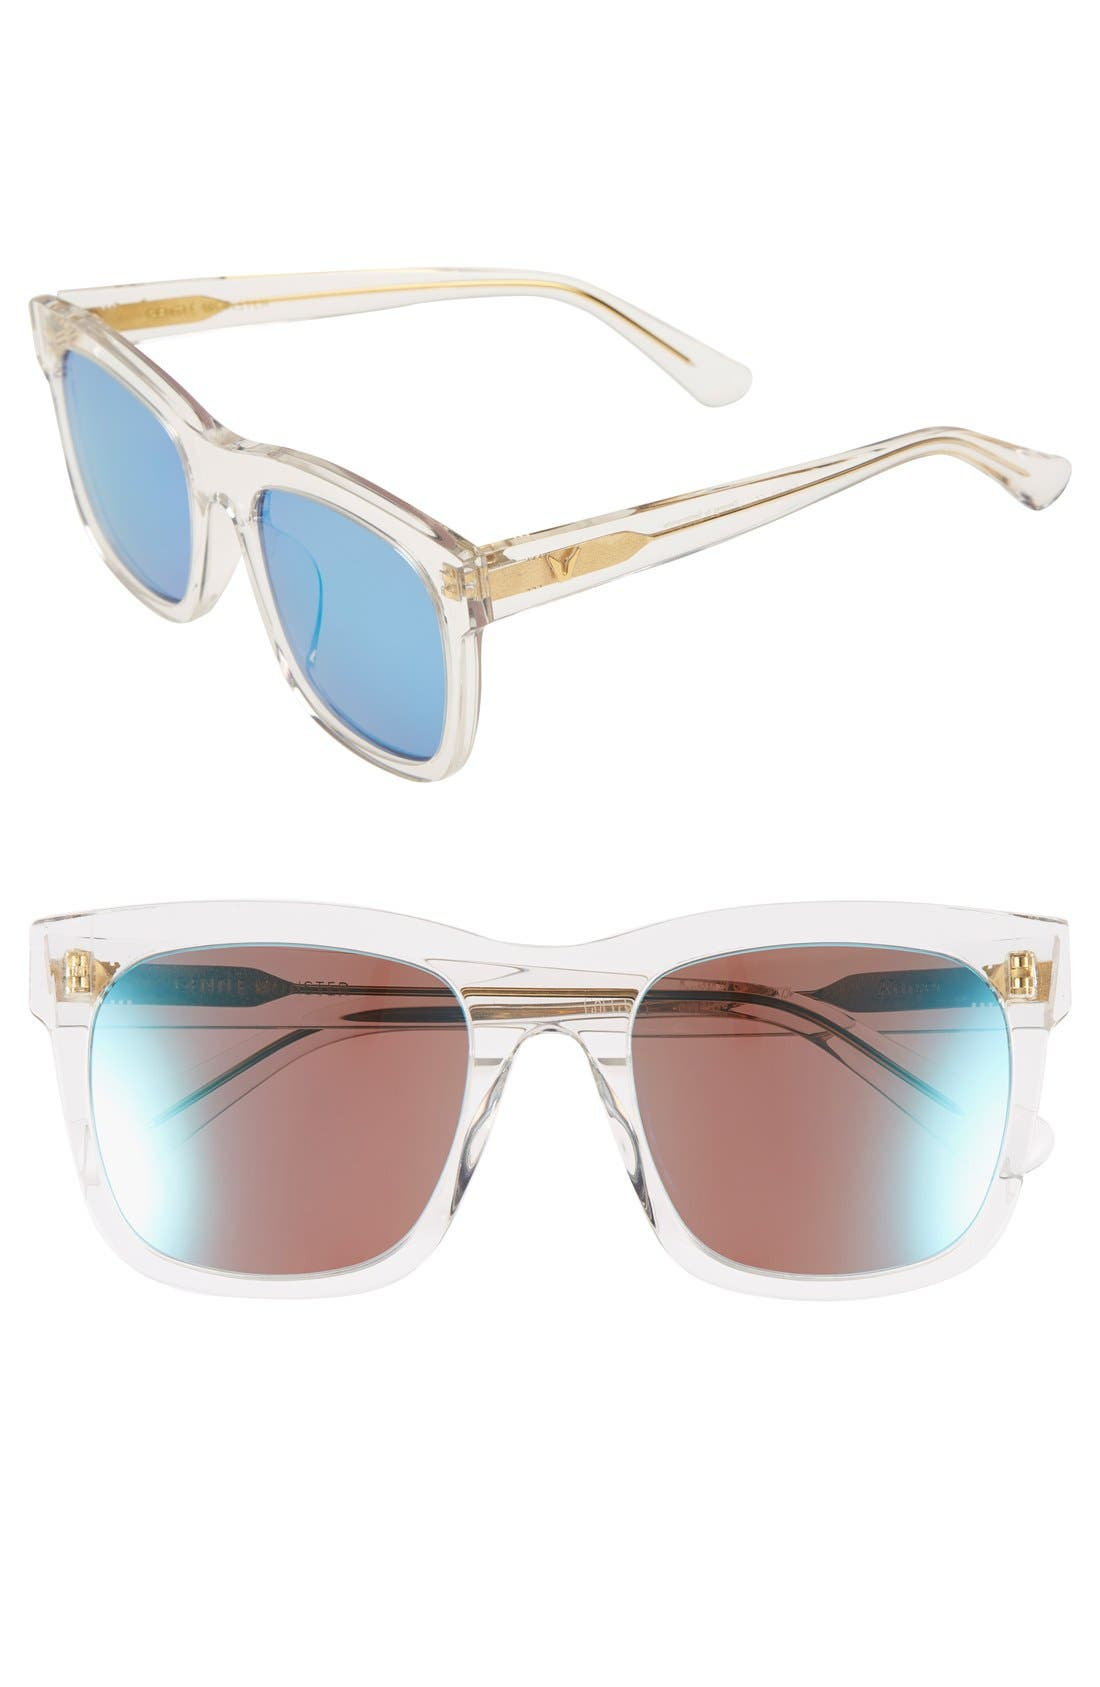 Main Image - Gentle Monster 54mm Sunglasses